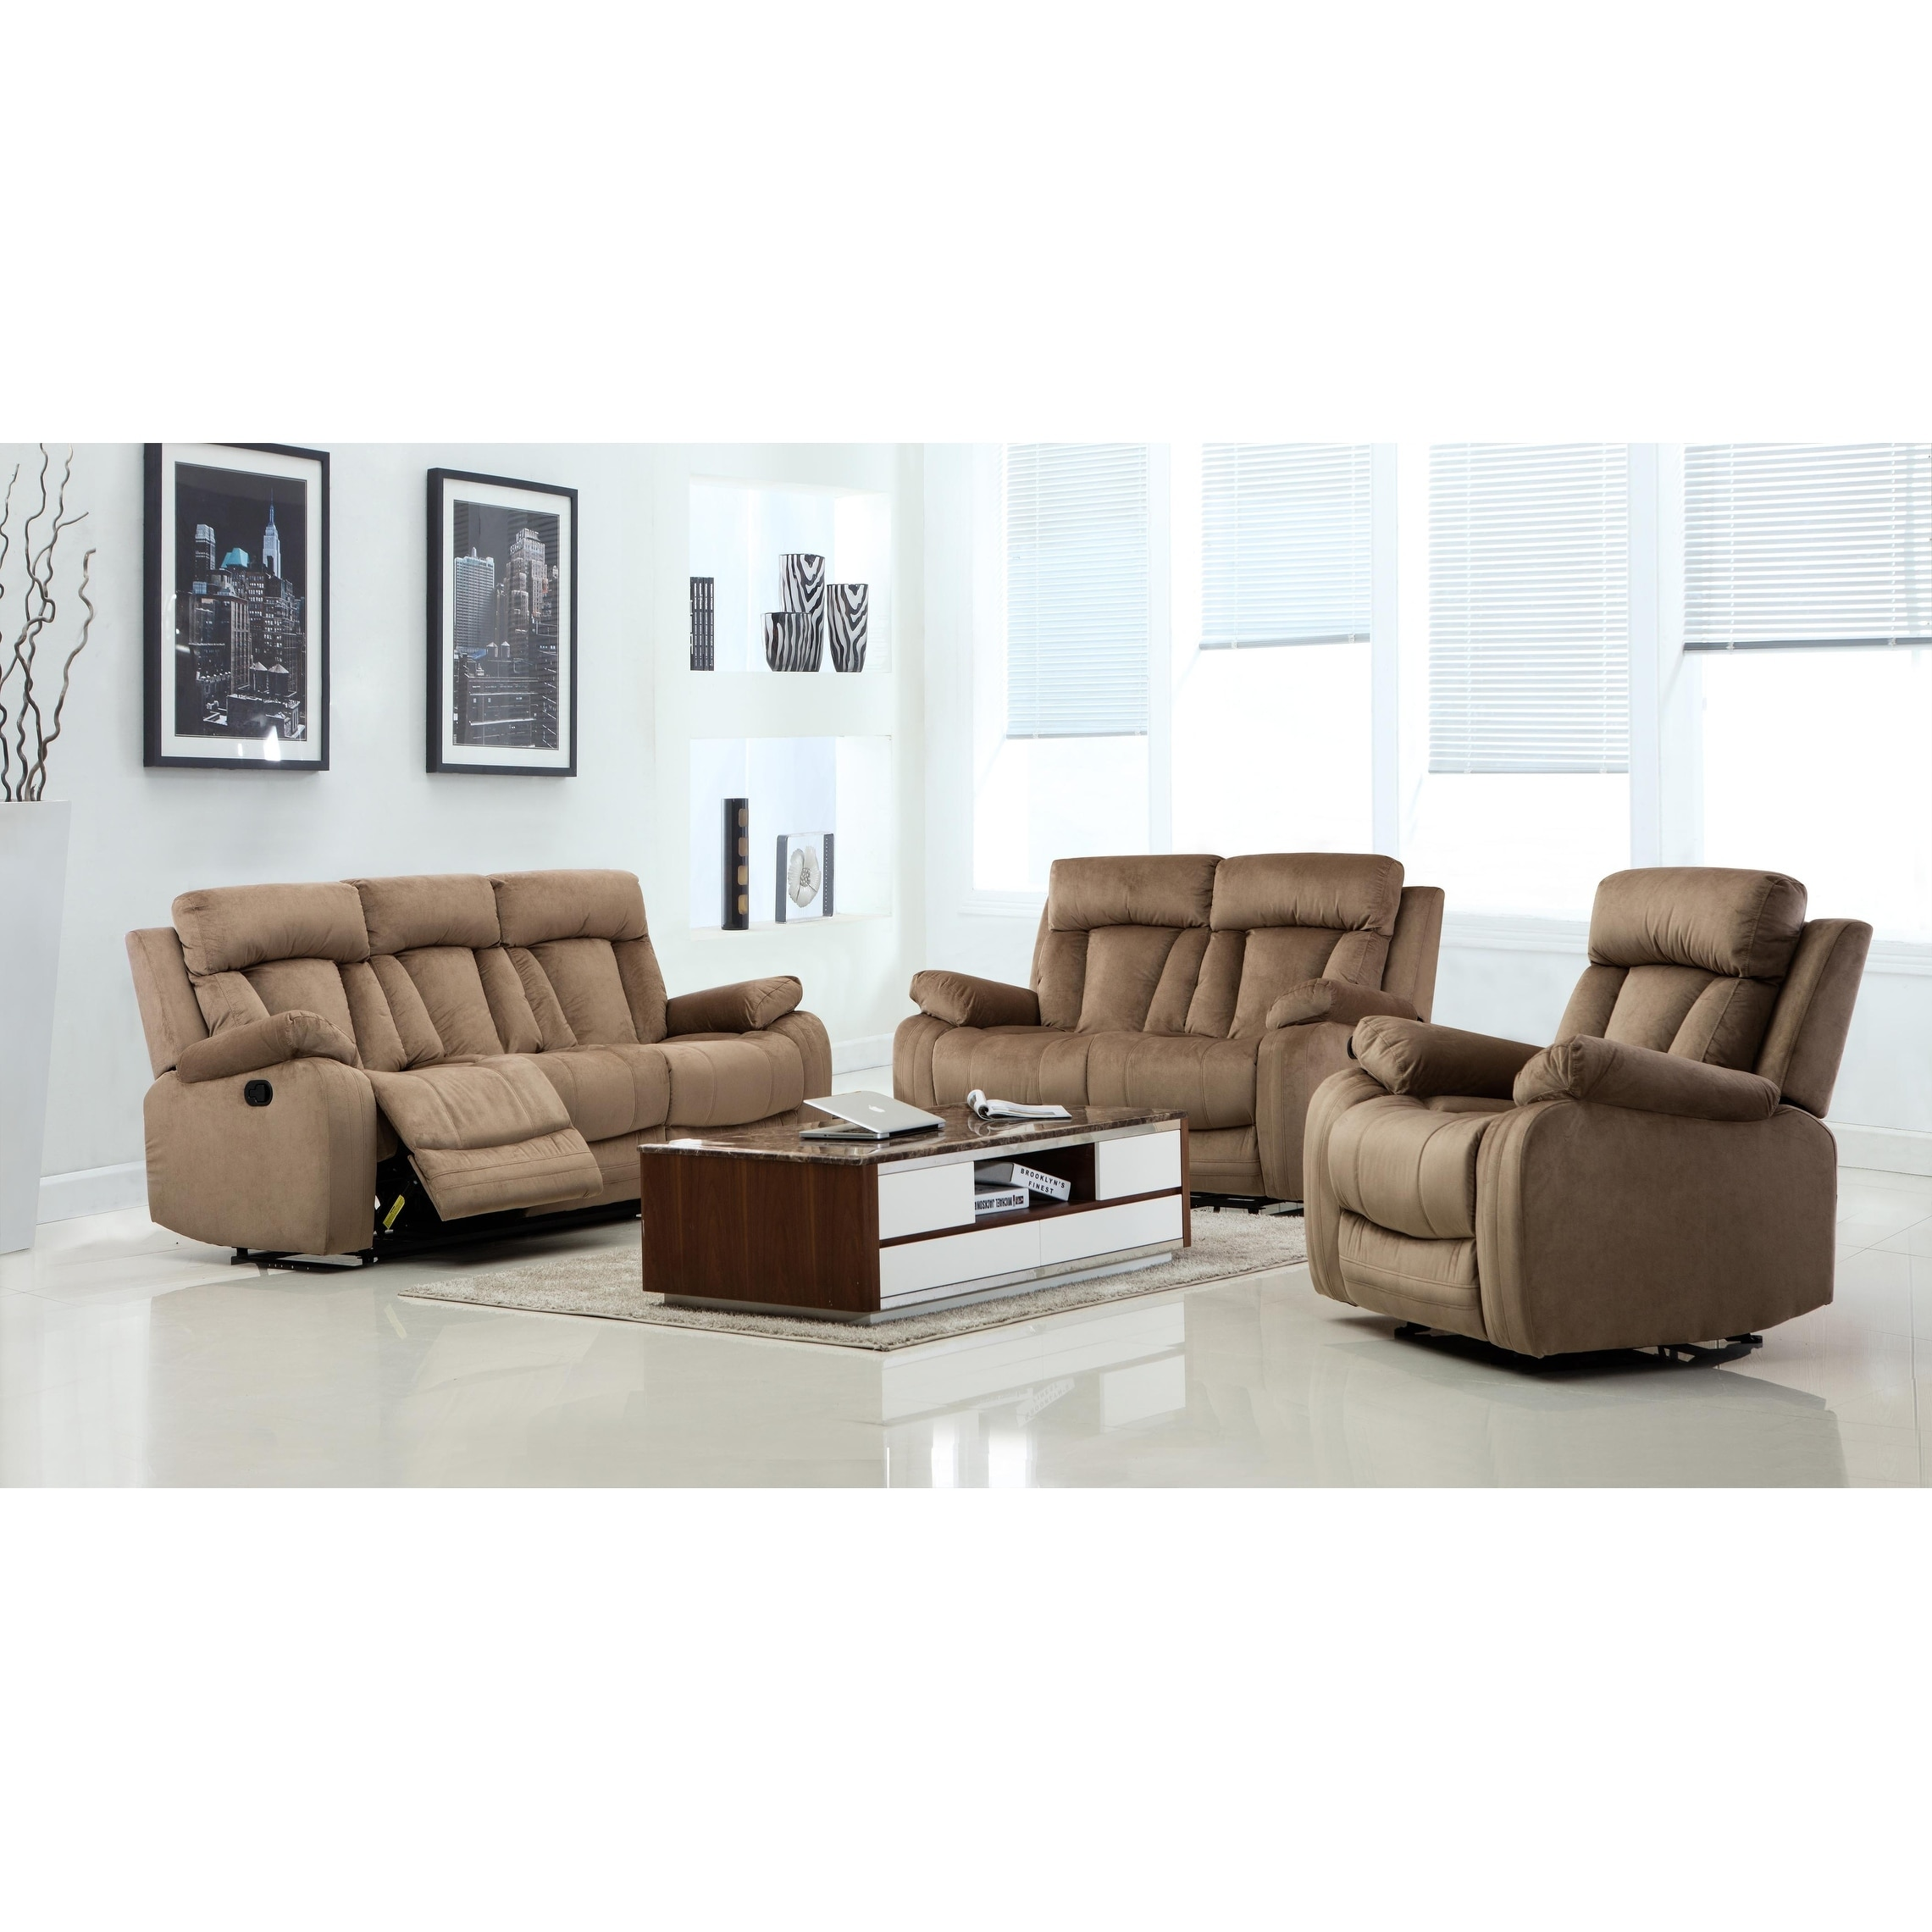 Shop GU Industries Microfiber Fabric Upholstered 3-Piece Living Room ...